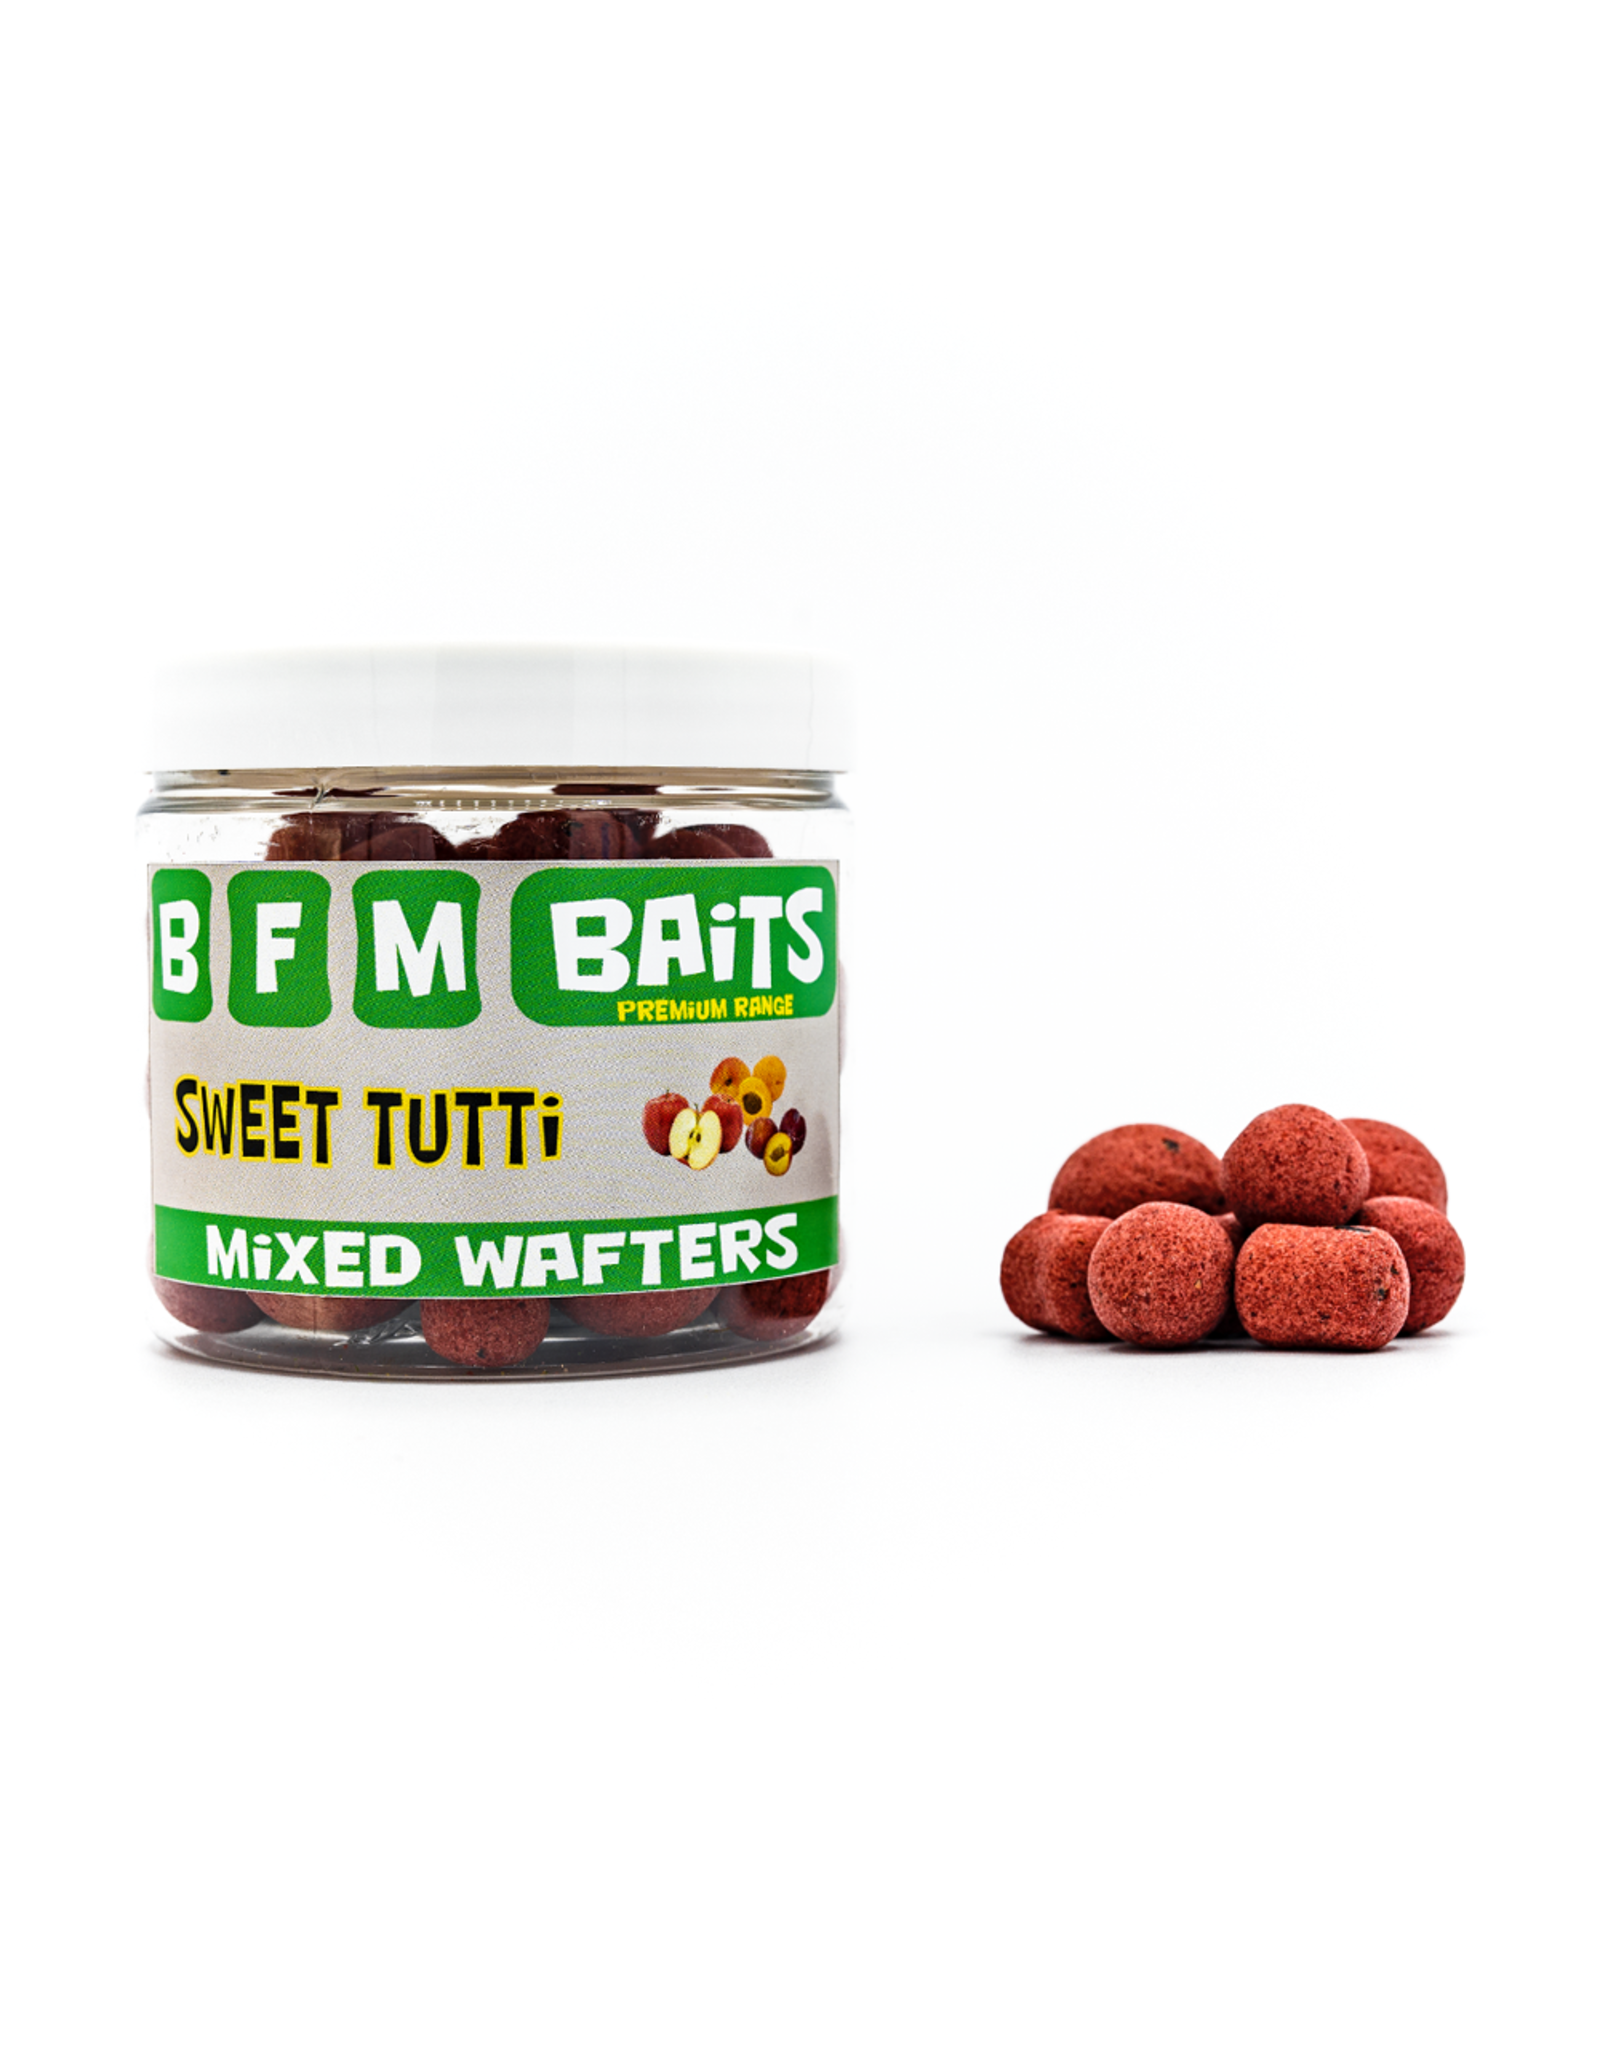 BFM Baits Sweet Tutti - Mixed Wafters